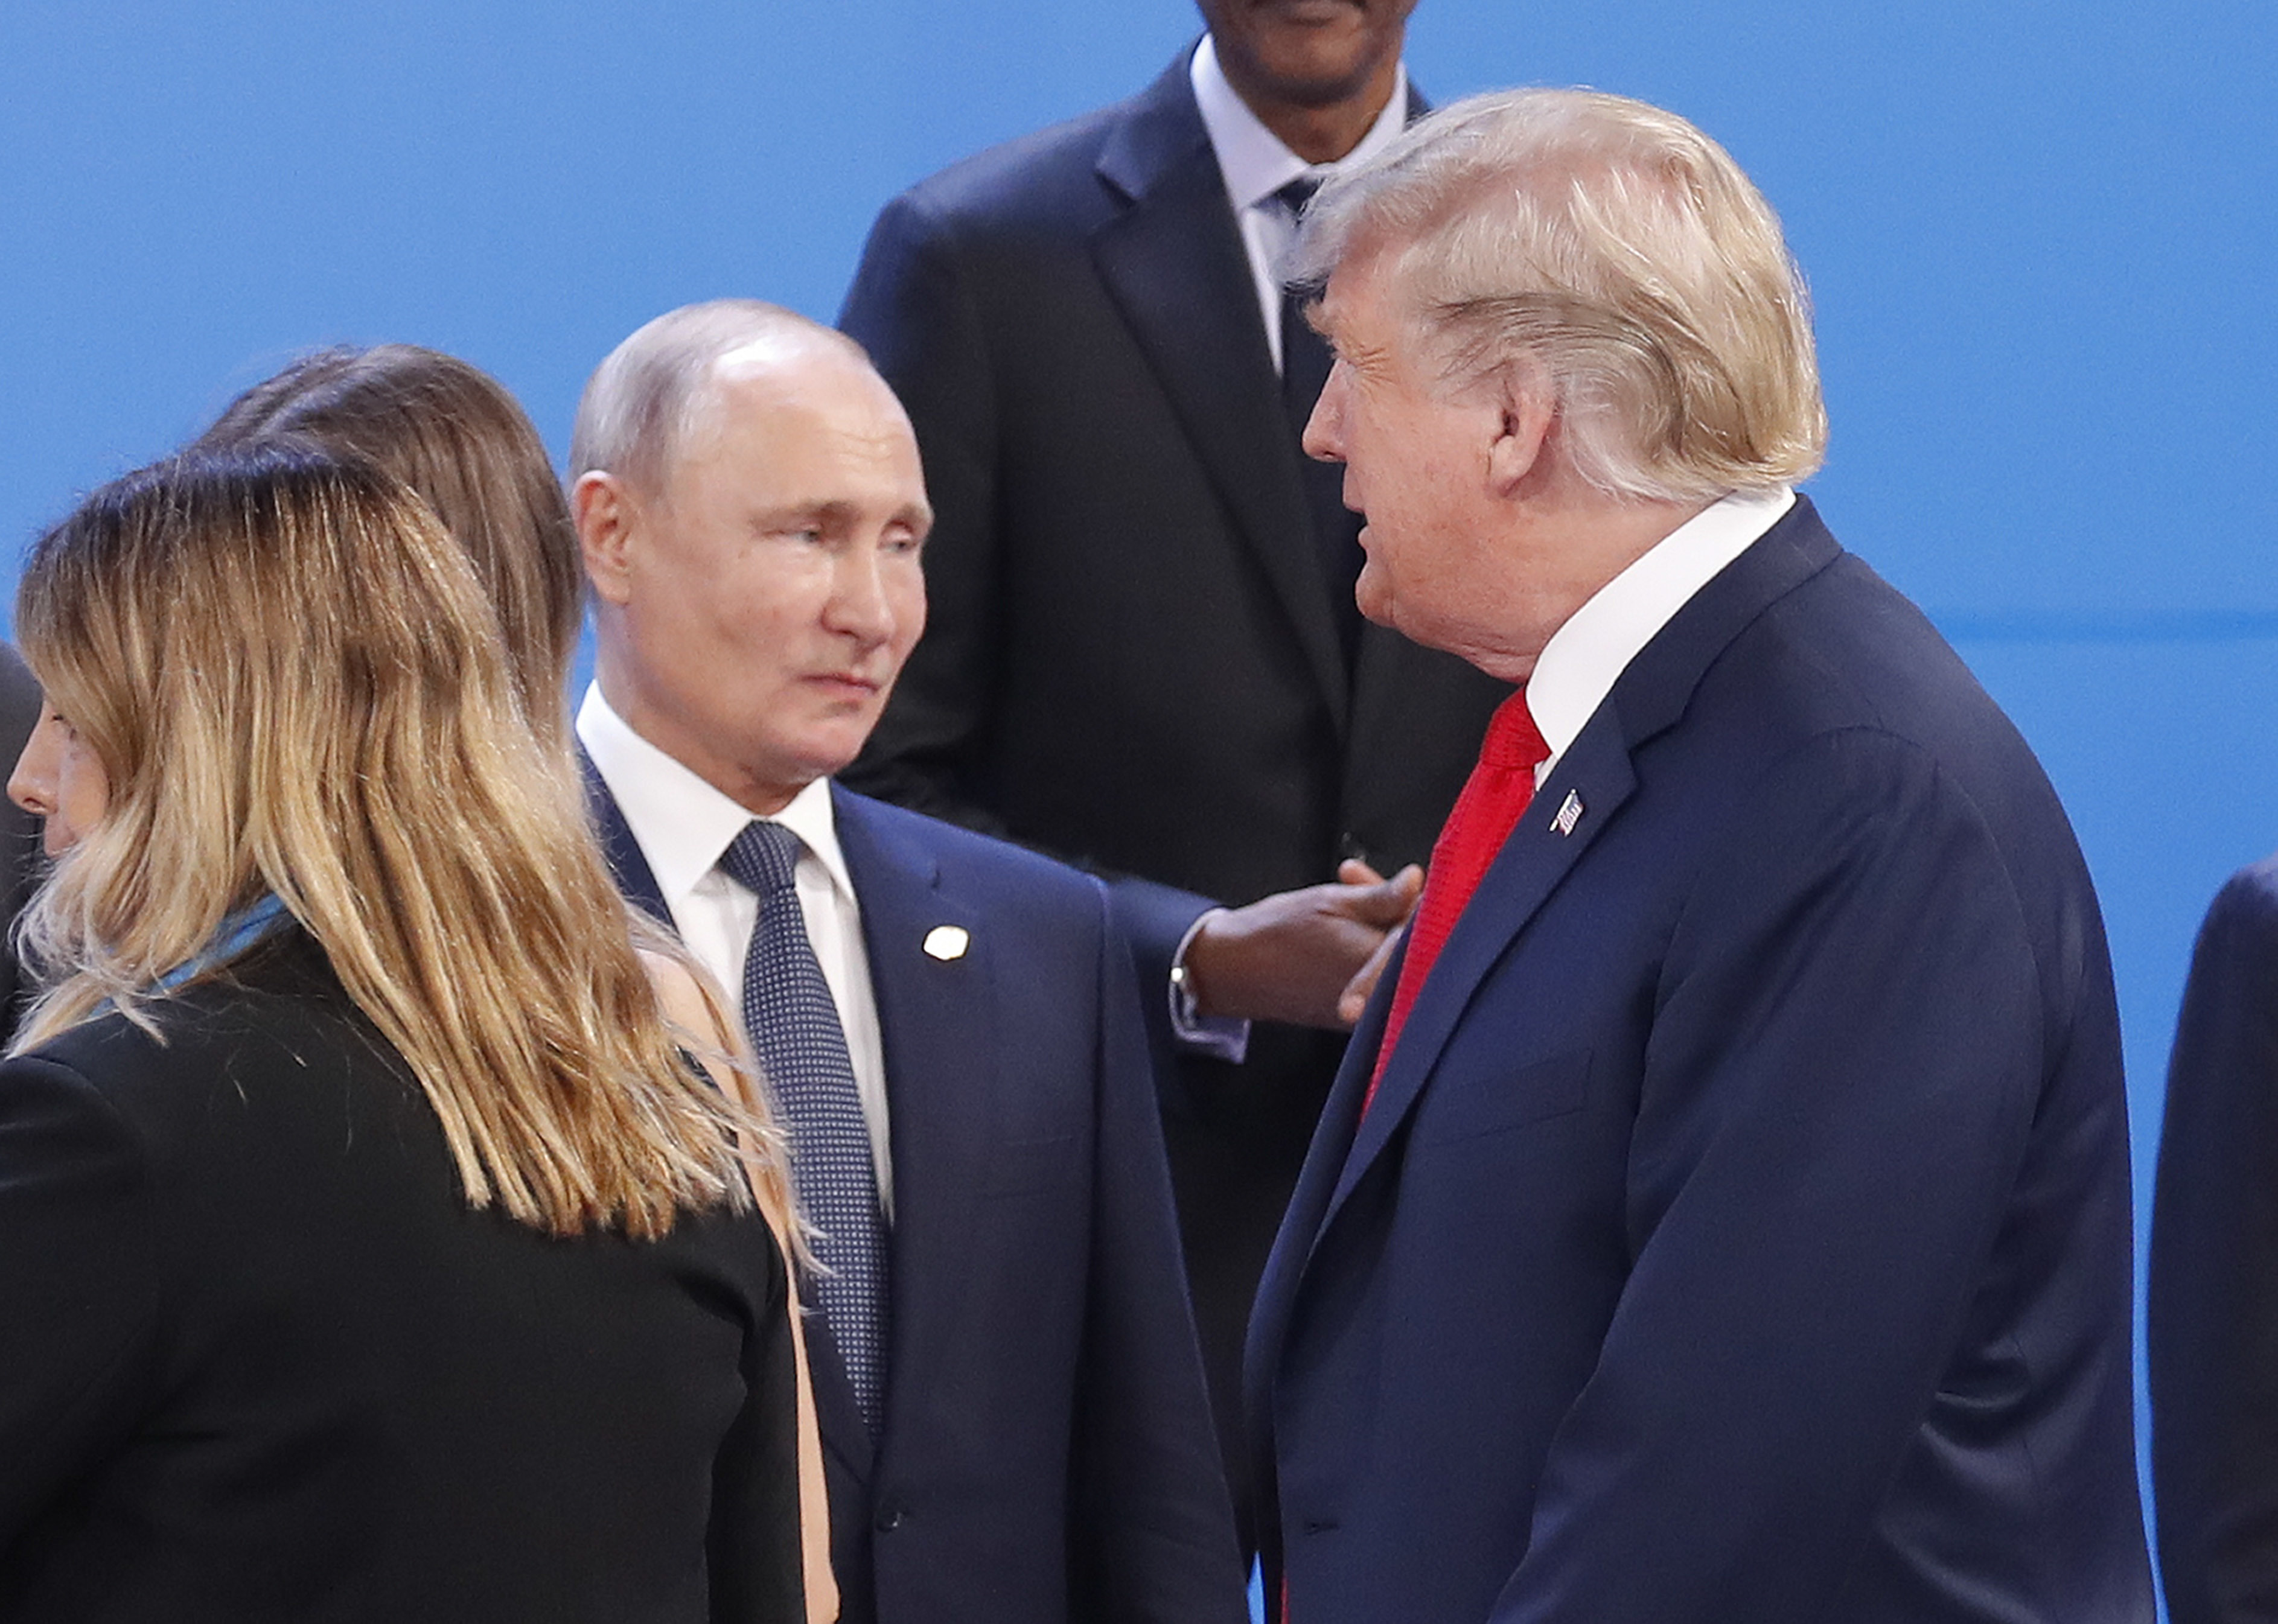 Donald Trump walks past Vladimir Putin as they gather for the group photo at the start of the G20 summit in Buenos Aires